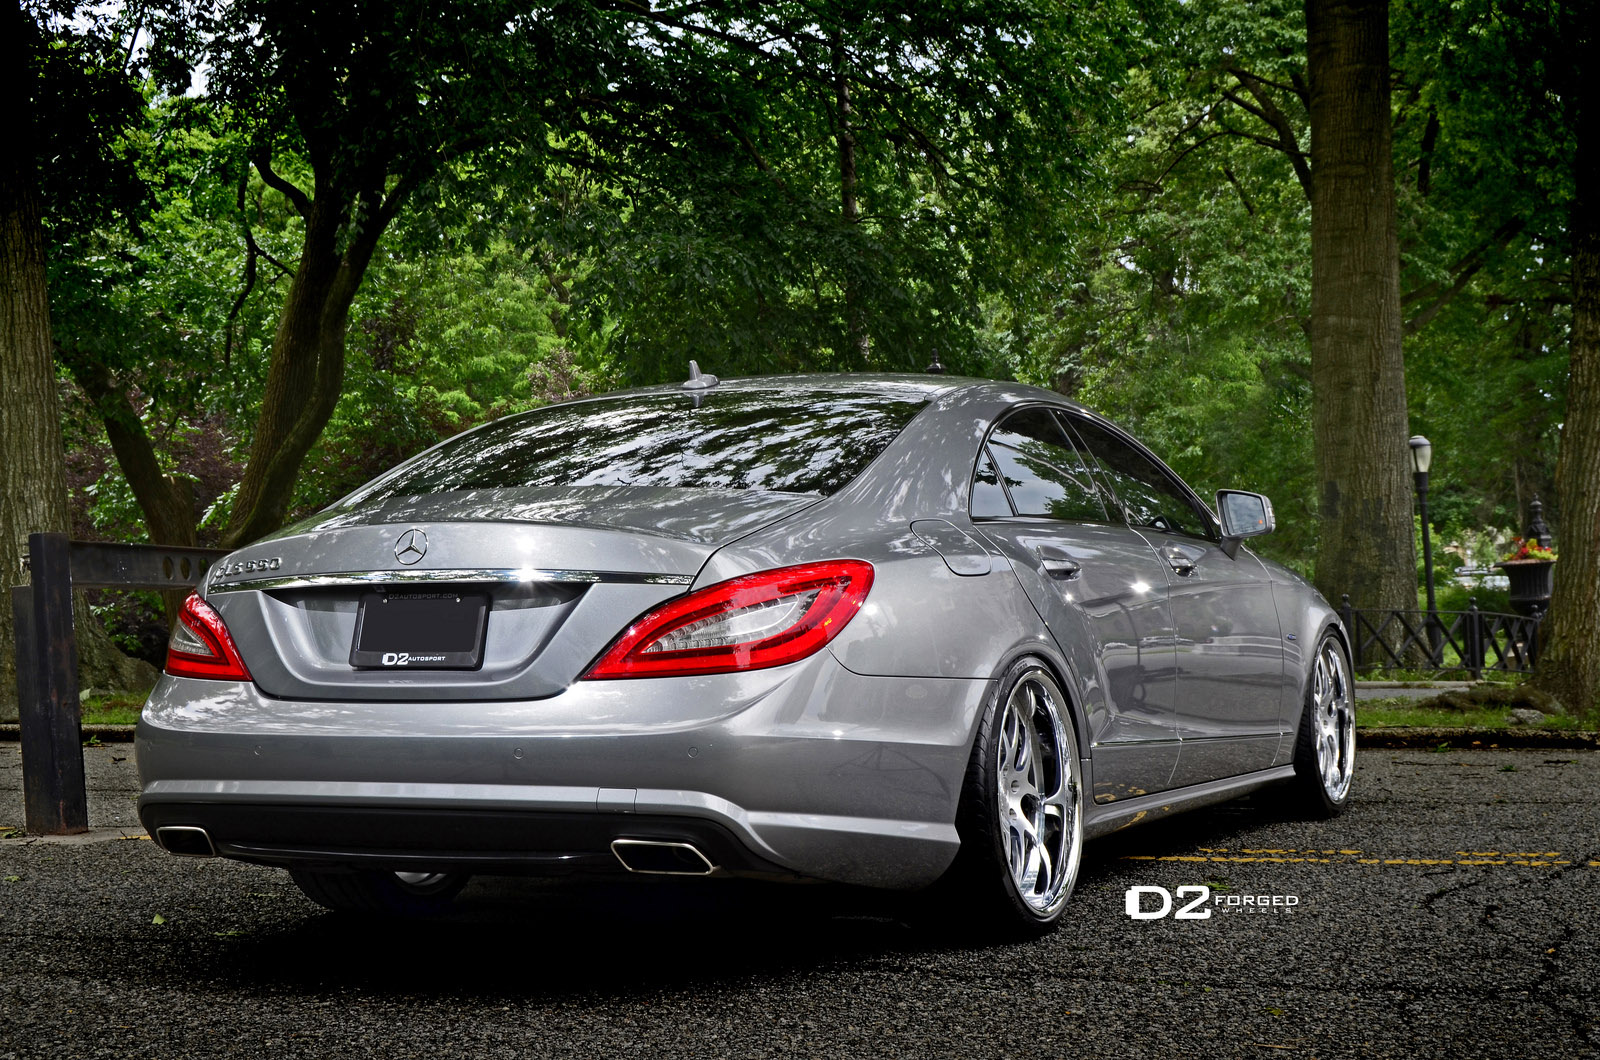 D2forged mercedes benz cls 550 fms08 picture 86803 for 2009 mercedes benz cls 550 amg